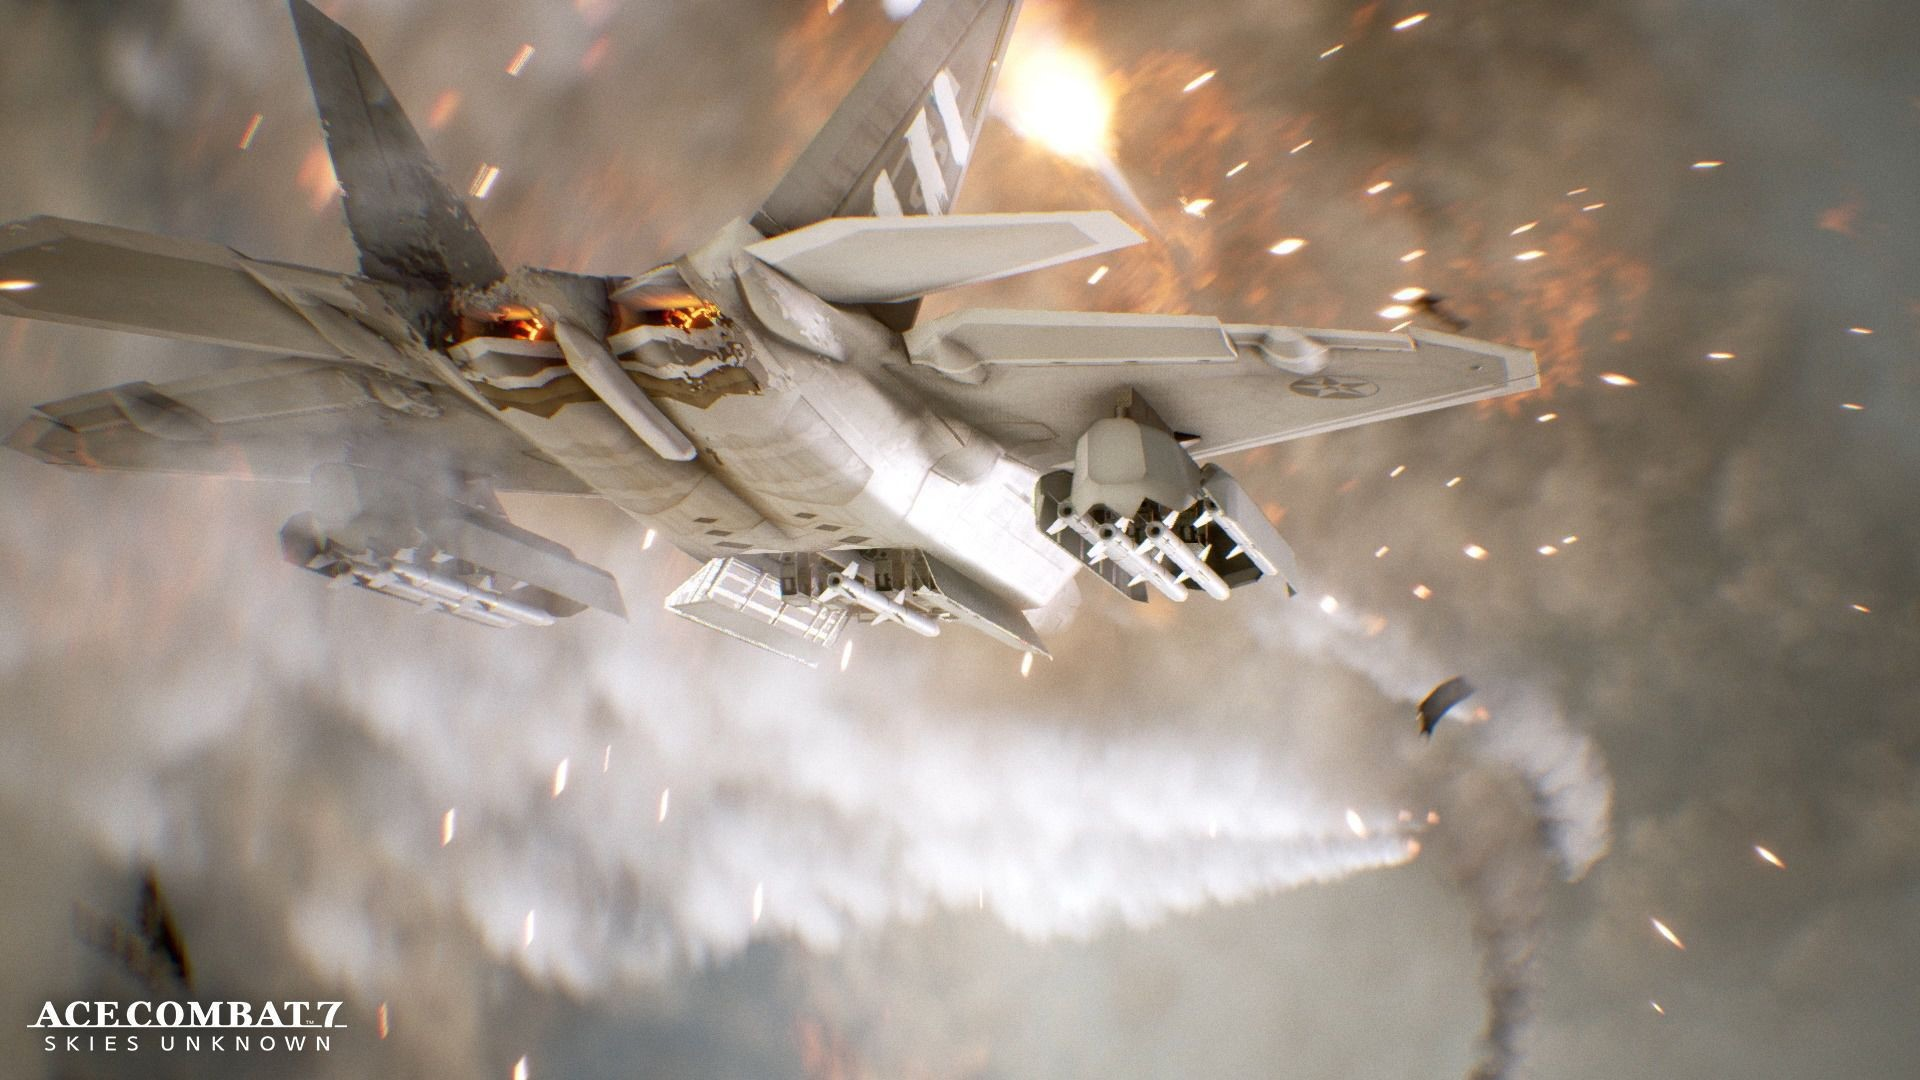 Res: 1920x1080, Ace Combat 7 Skies Unknown